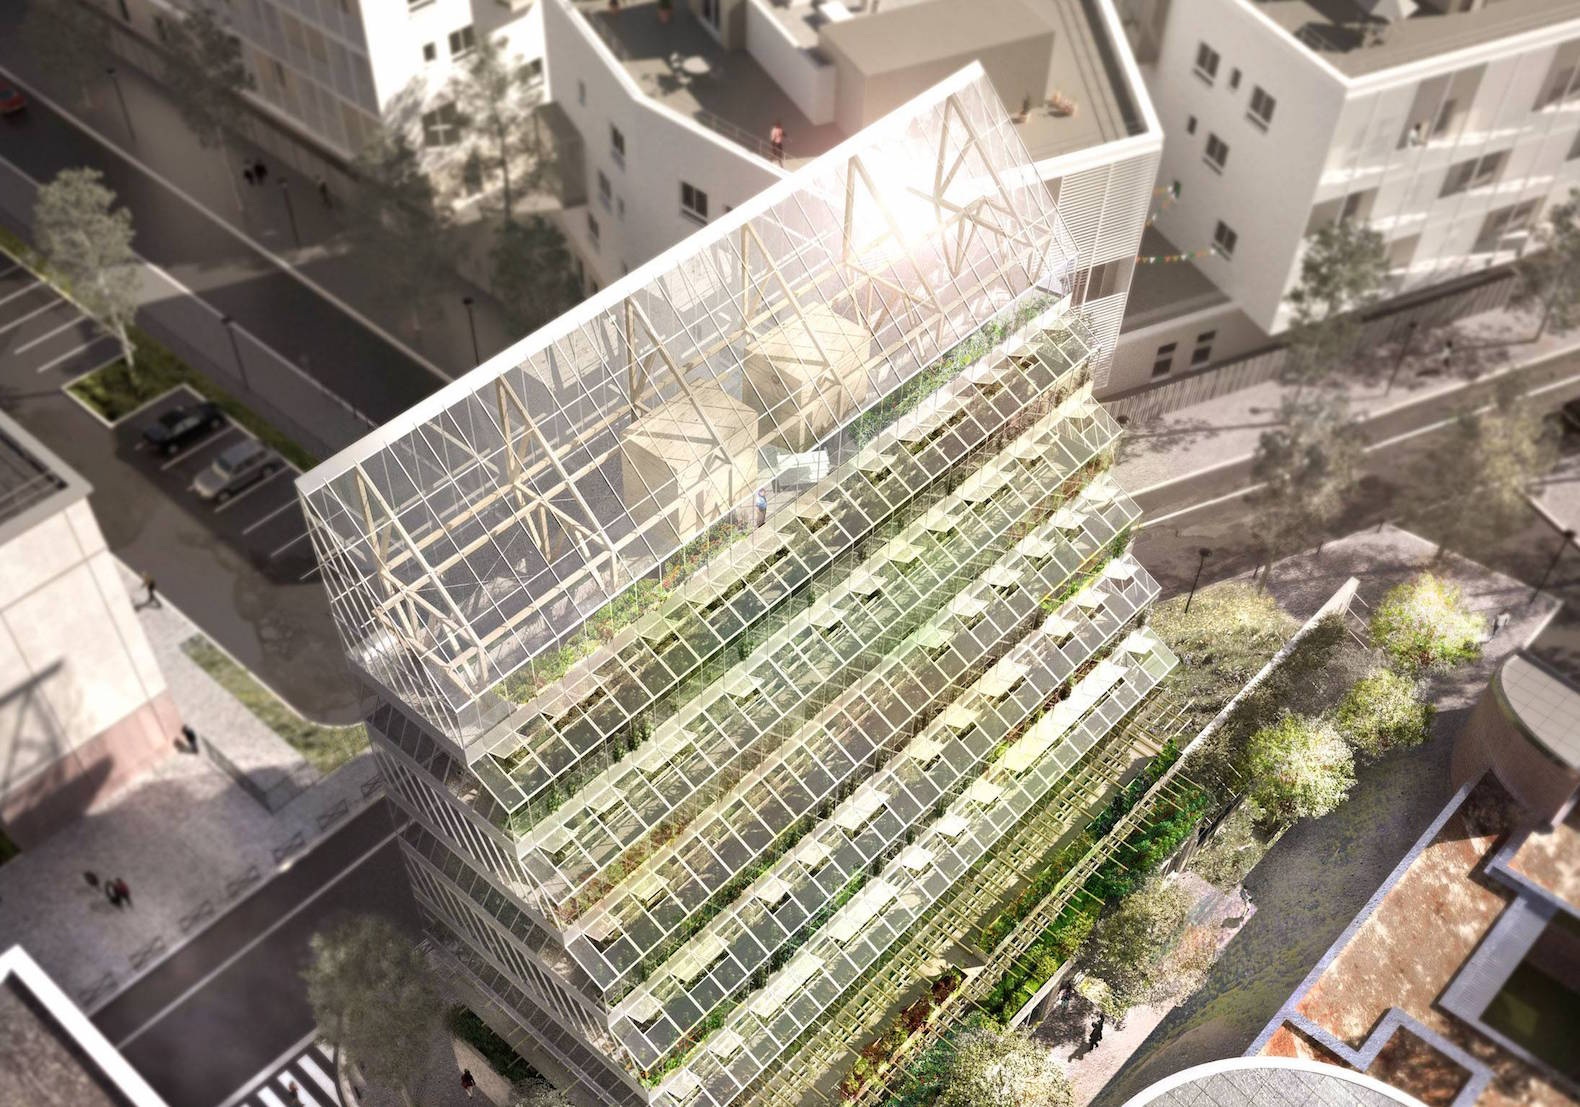 High Quality Ziggurat Like Vertical Farming Tower Would Soak Up The Sun In Paris